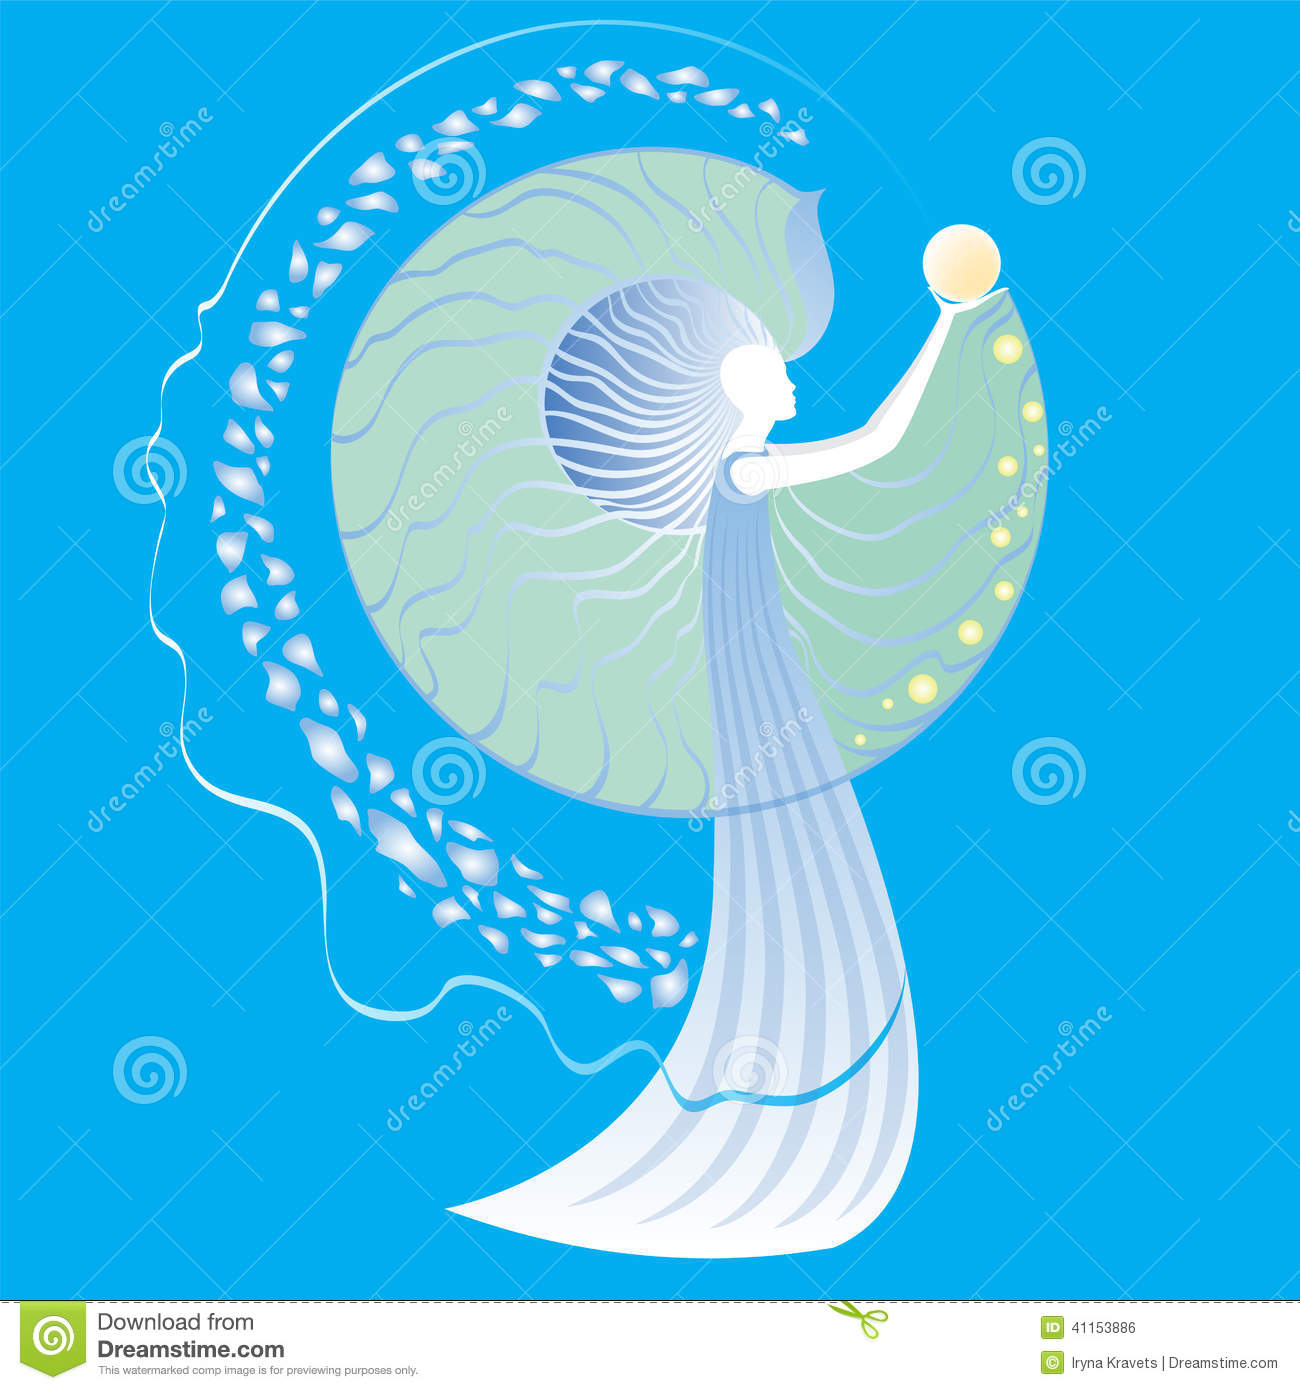 Birth Pearls In Shell Stock Vector - Image: 41153886